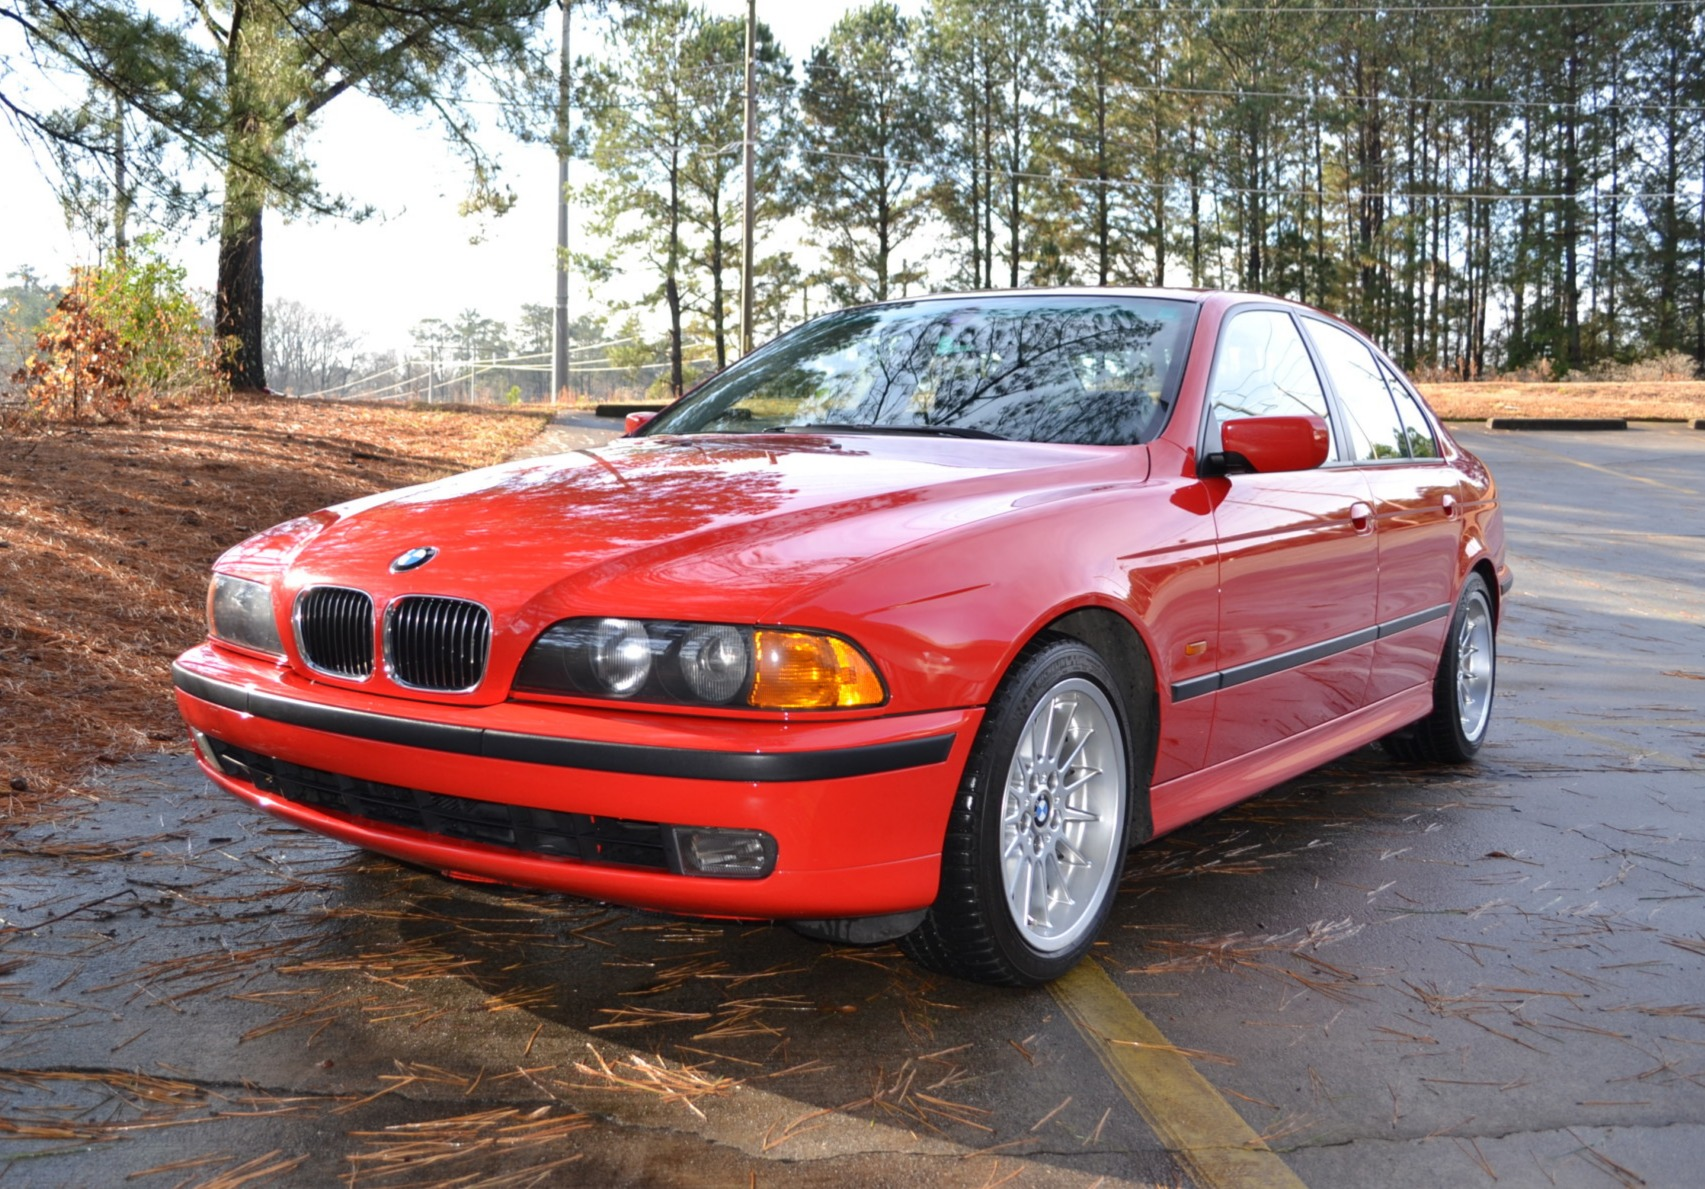 hight resolution of 2000 bmw 540i 6 speed for sale on bat auctions sold for 16 750 on january 24 2019 lot 15 801 bring a trailer